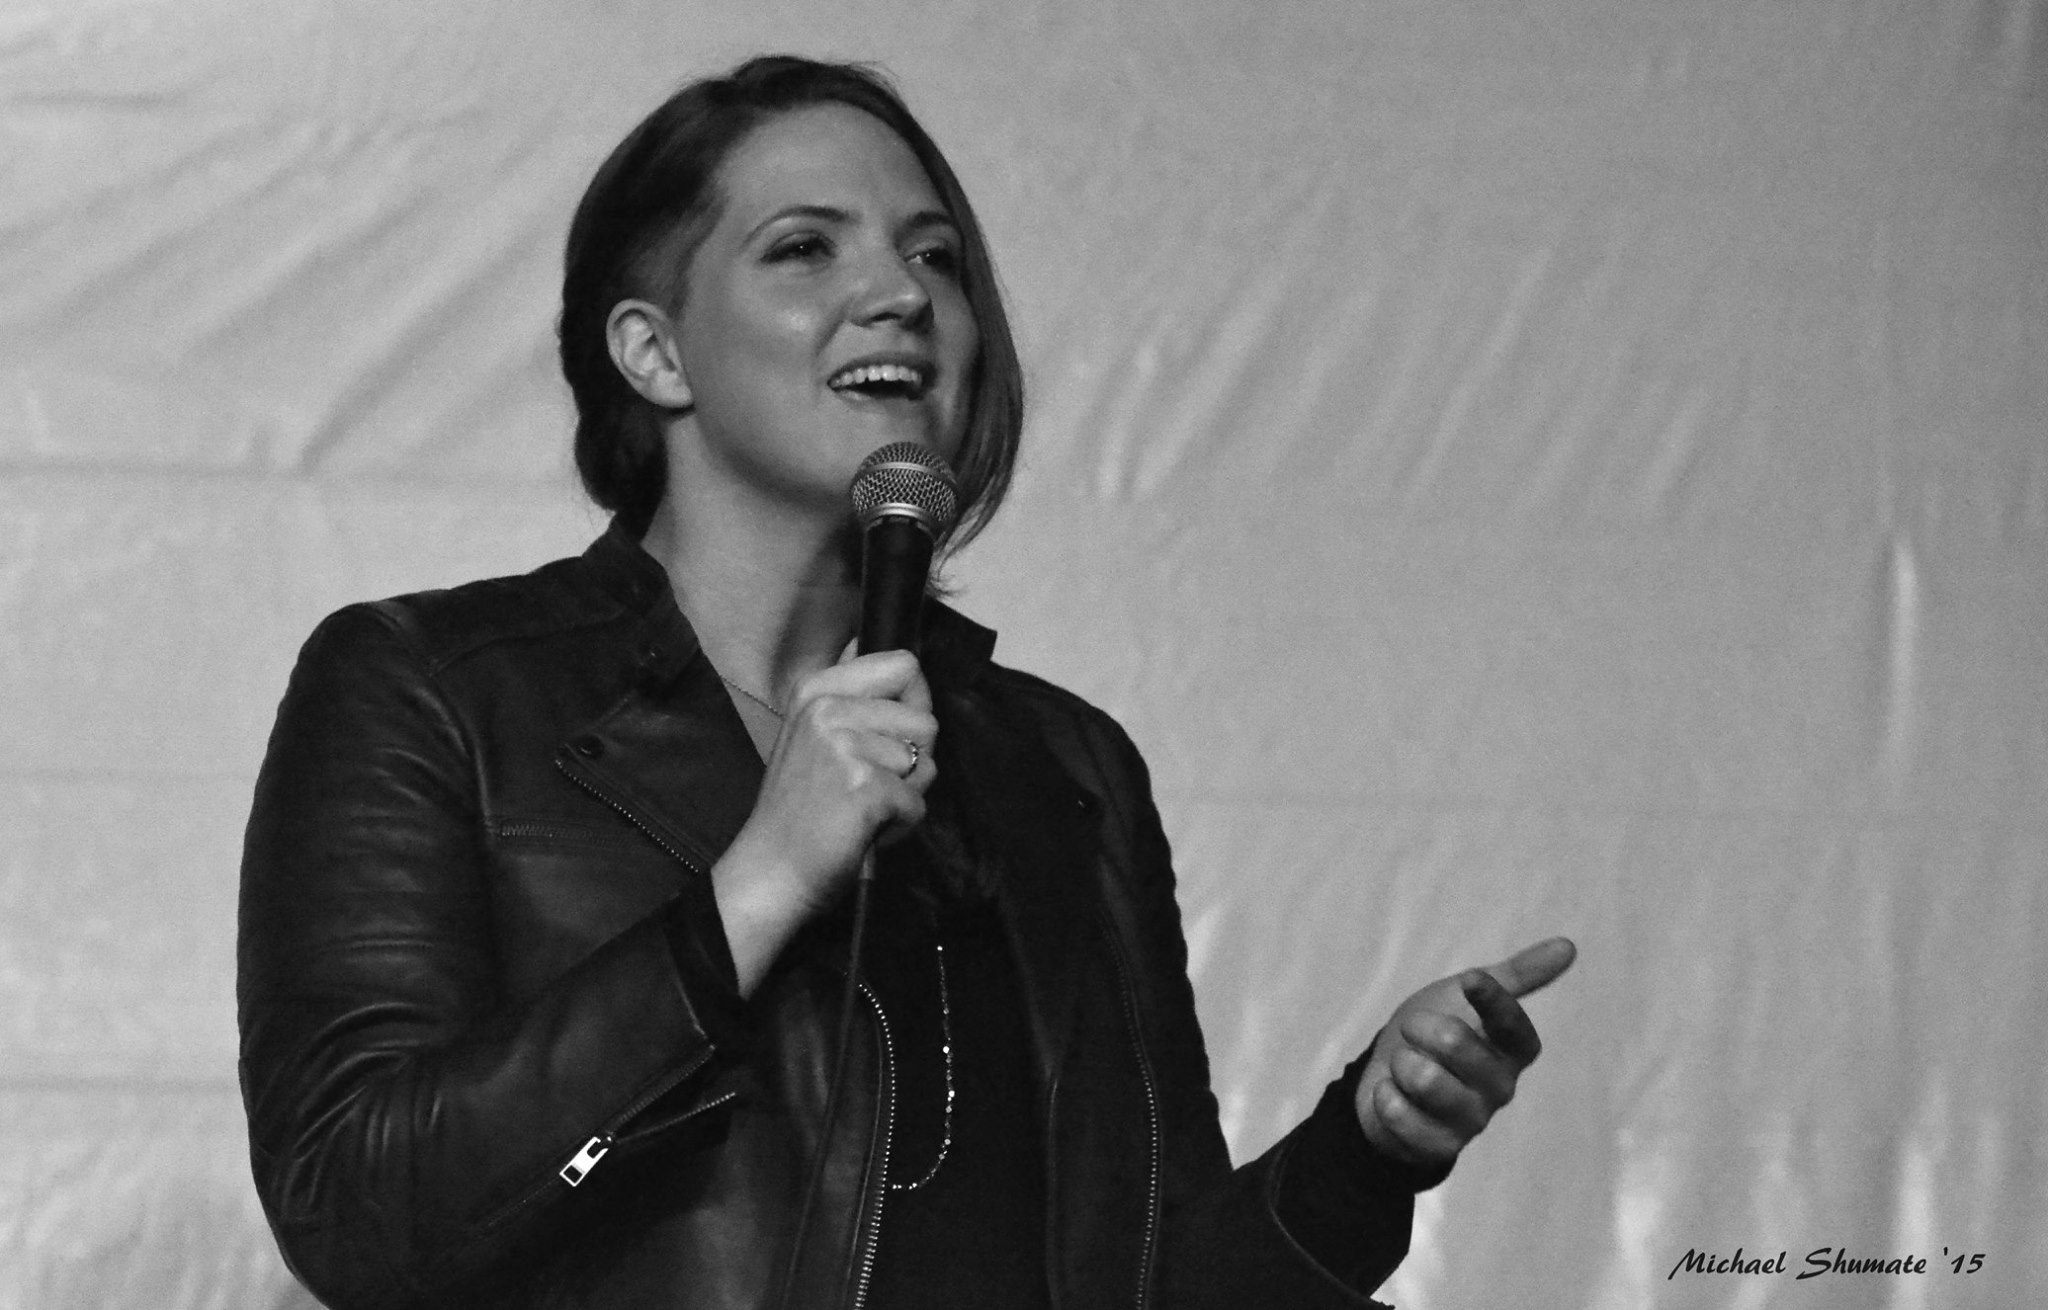 Mars Presents Variety Show, Nashville, 2015. Talking about death and living and courage and resilience. Doing what makes me feel alive, right where I am.